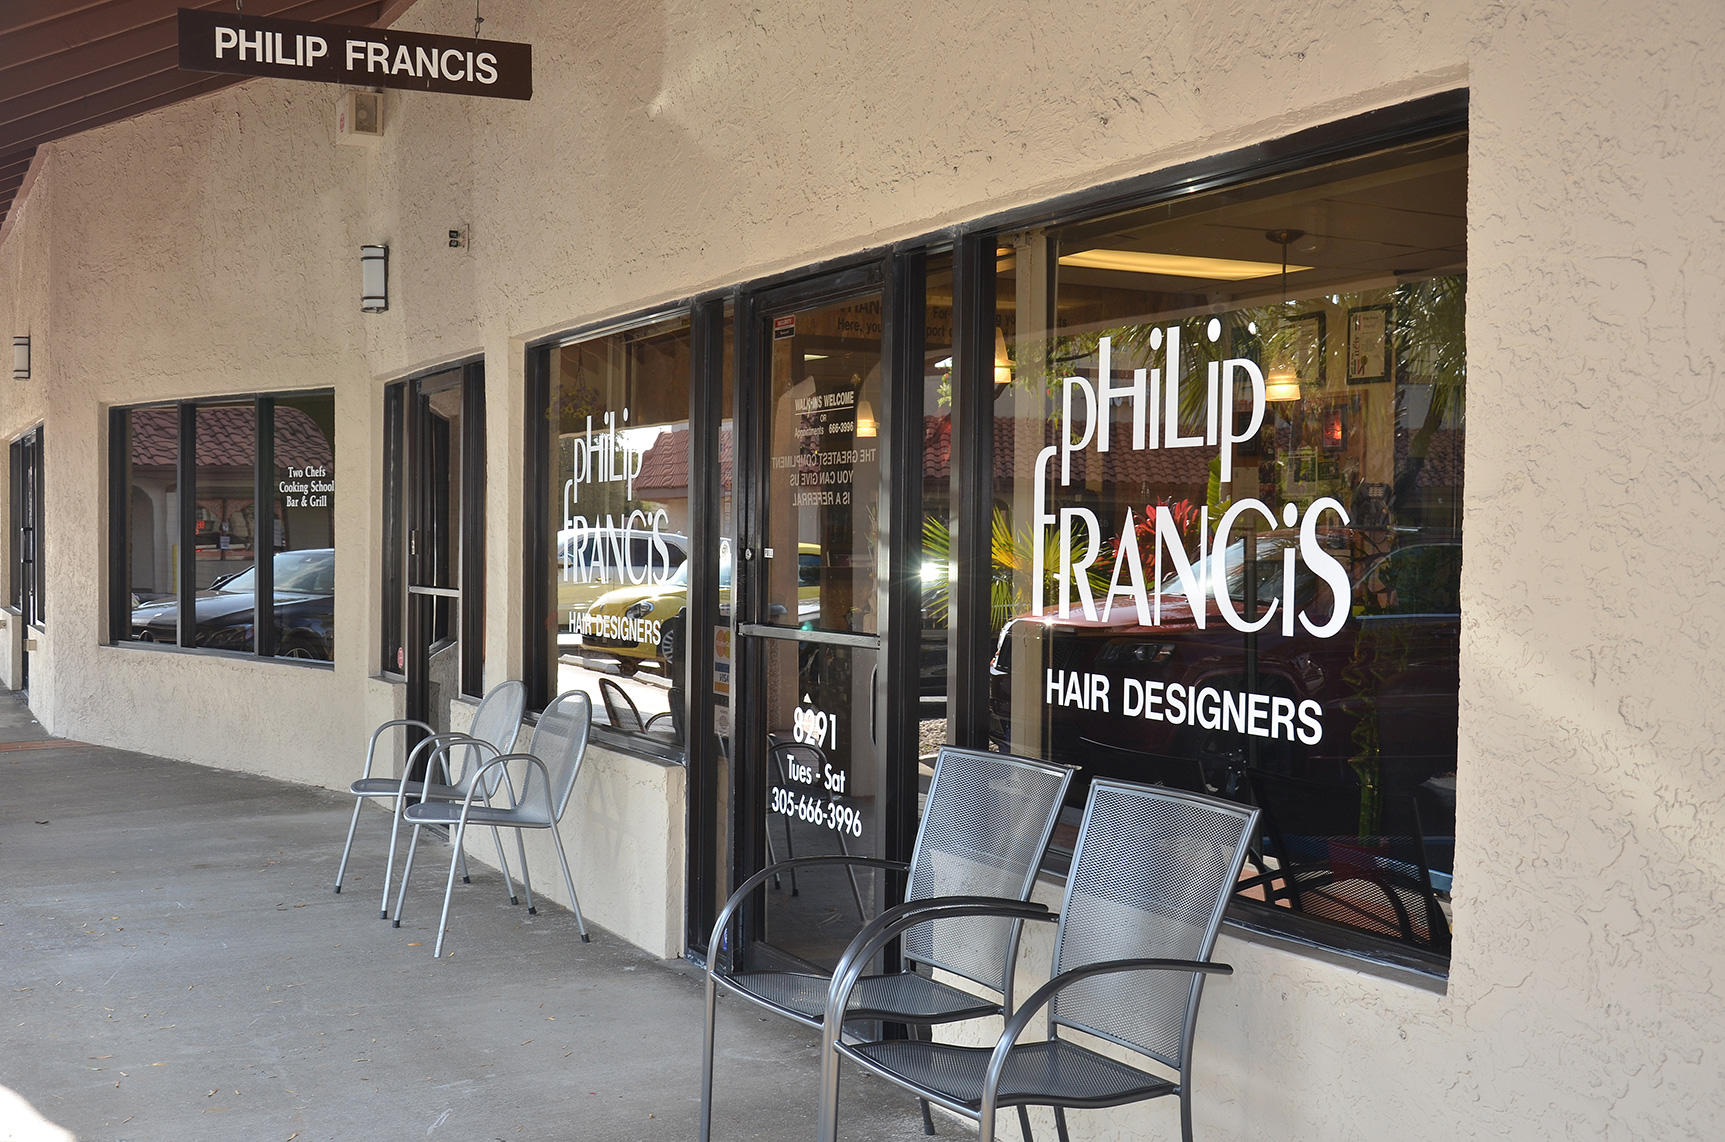 Philip francis hair salon coupons near me in miami 8coupons for Accolades salon coupon